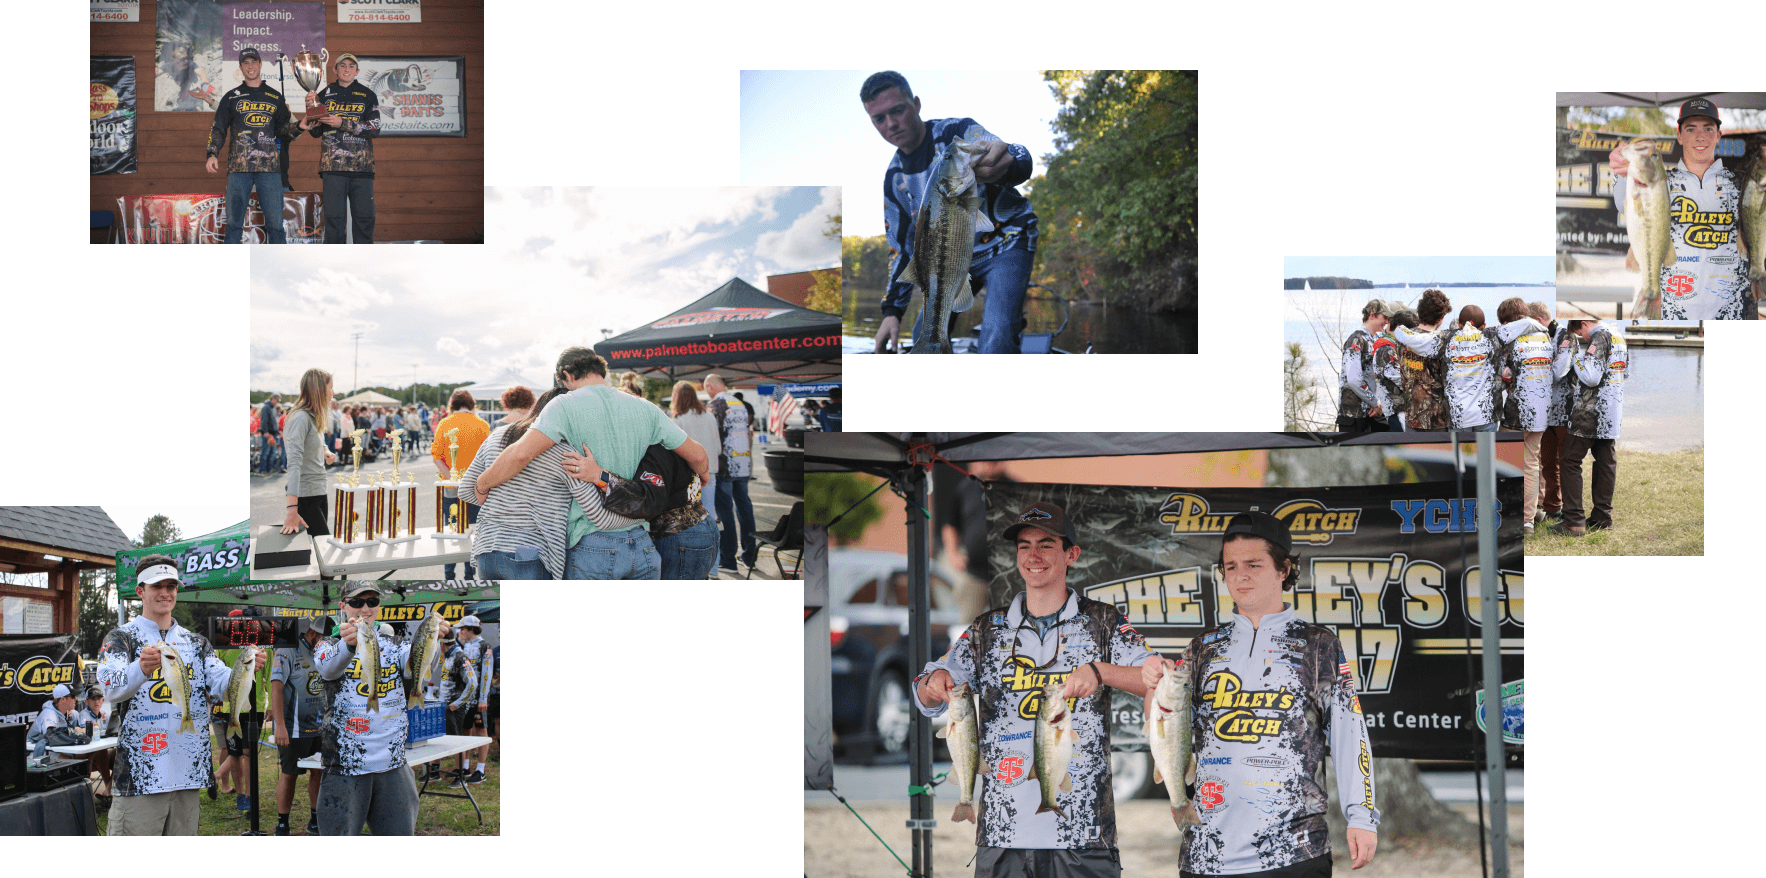 Collage of Riley's Catch pictures